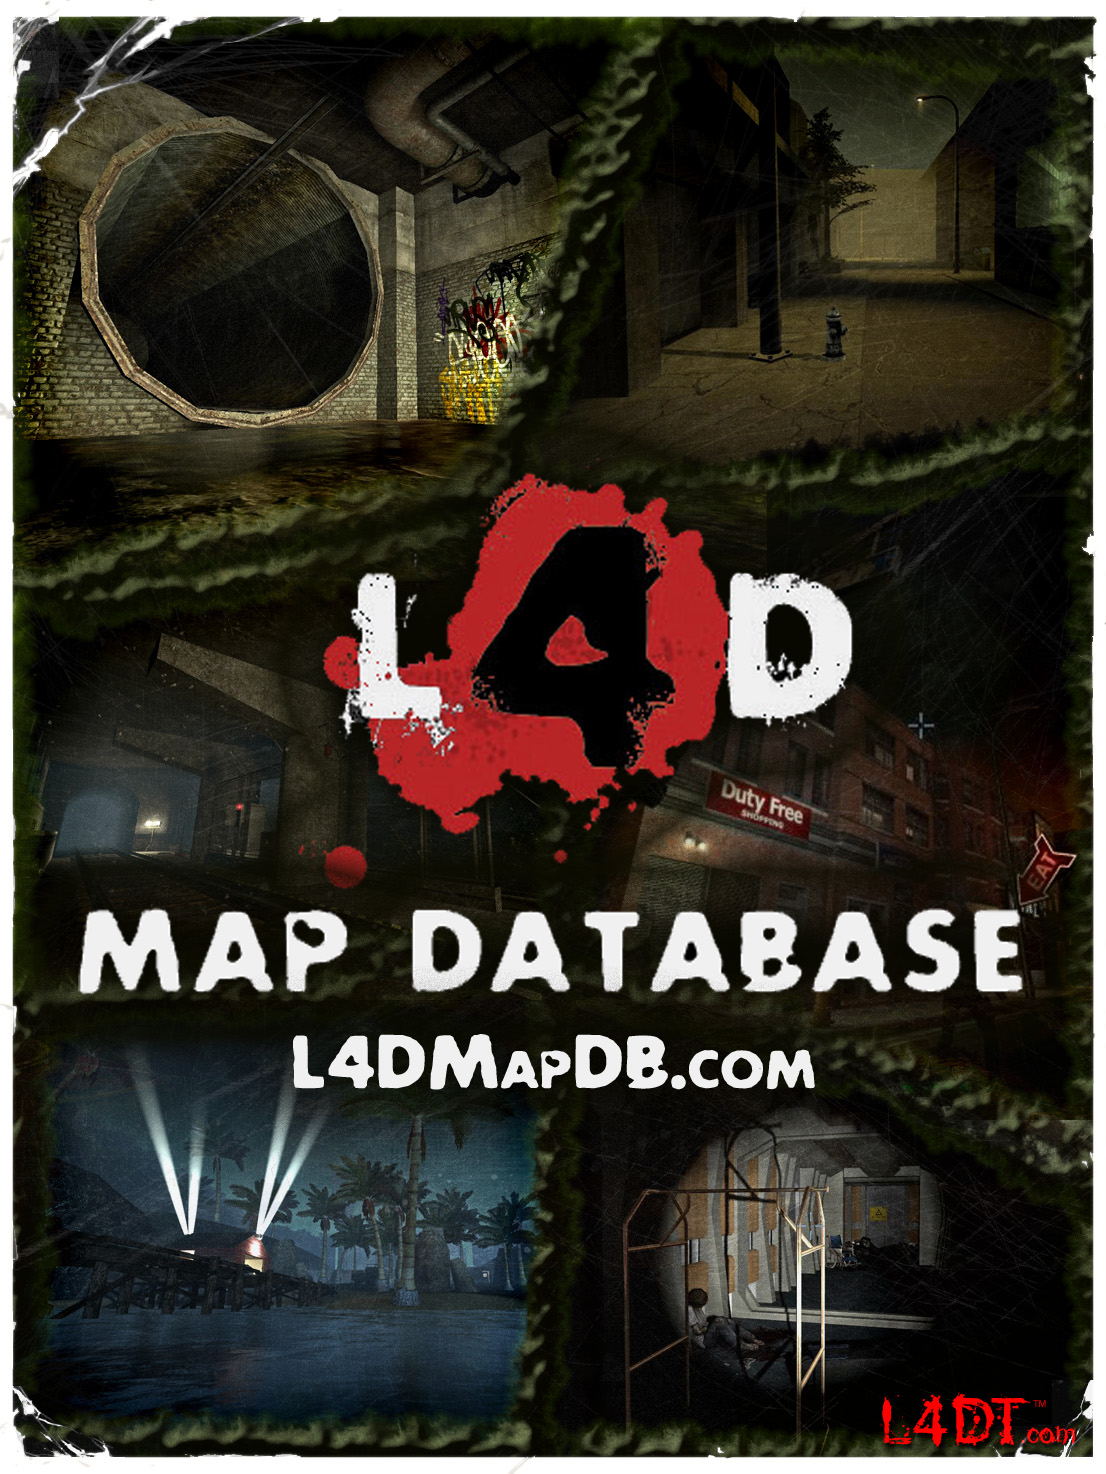 L4d Maps Cool Maps, - World Map Database L D Maps on